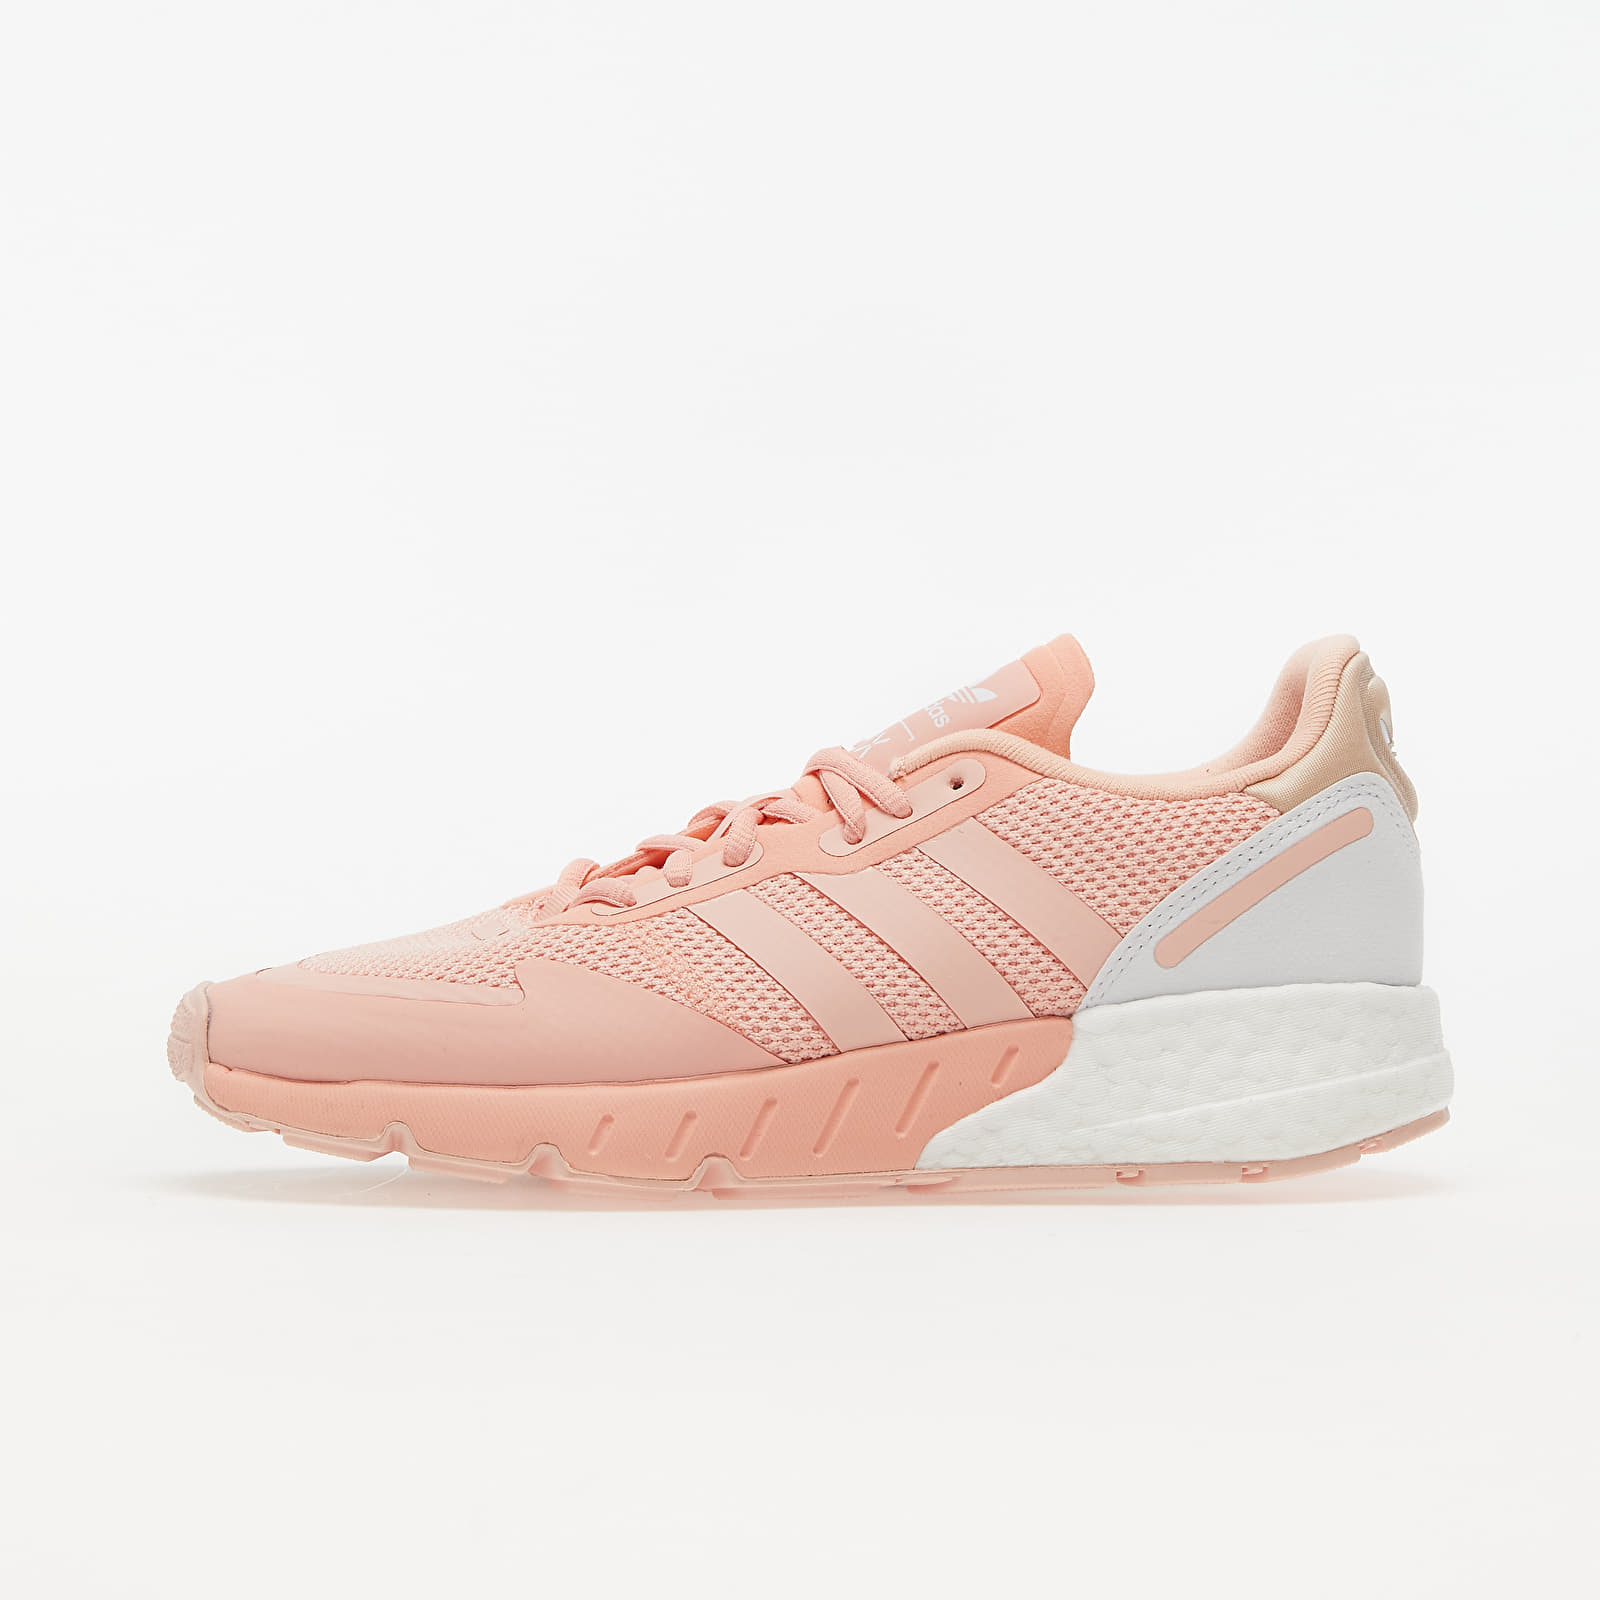 adidas ZX 1K Boost W Glow Pink/ Vapour Pink/ Ftw White EUR 41 1/3